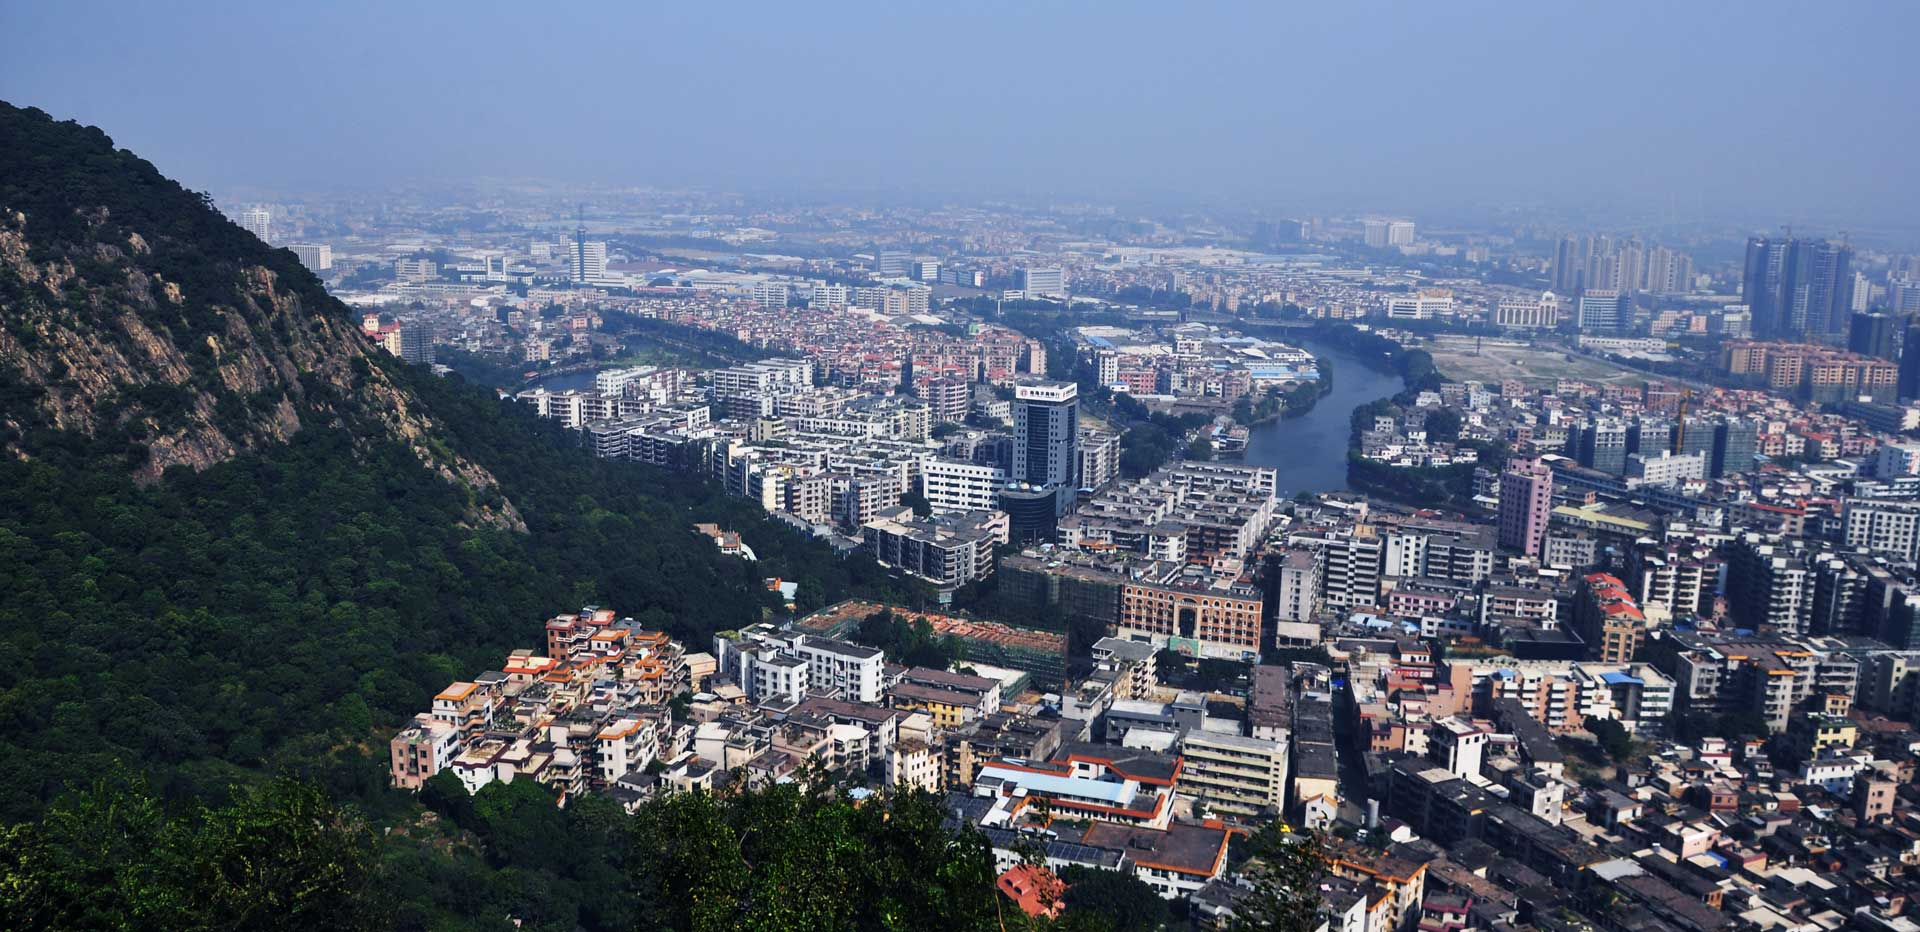 View of Foshan from Mount Xiqiao